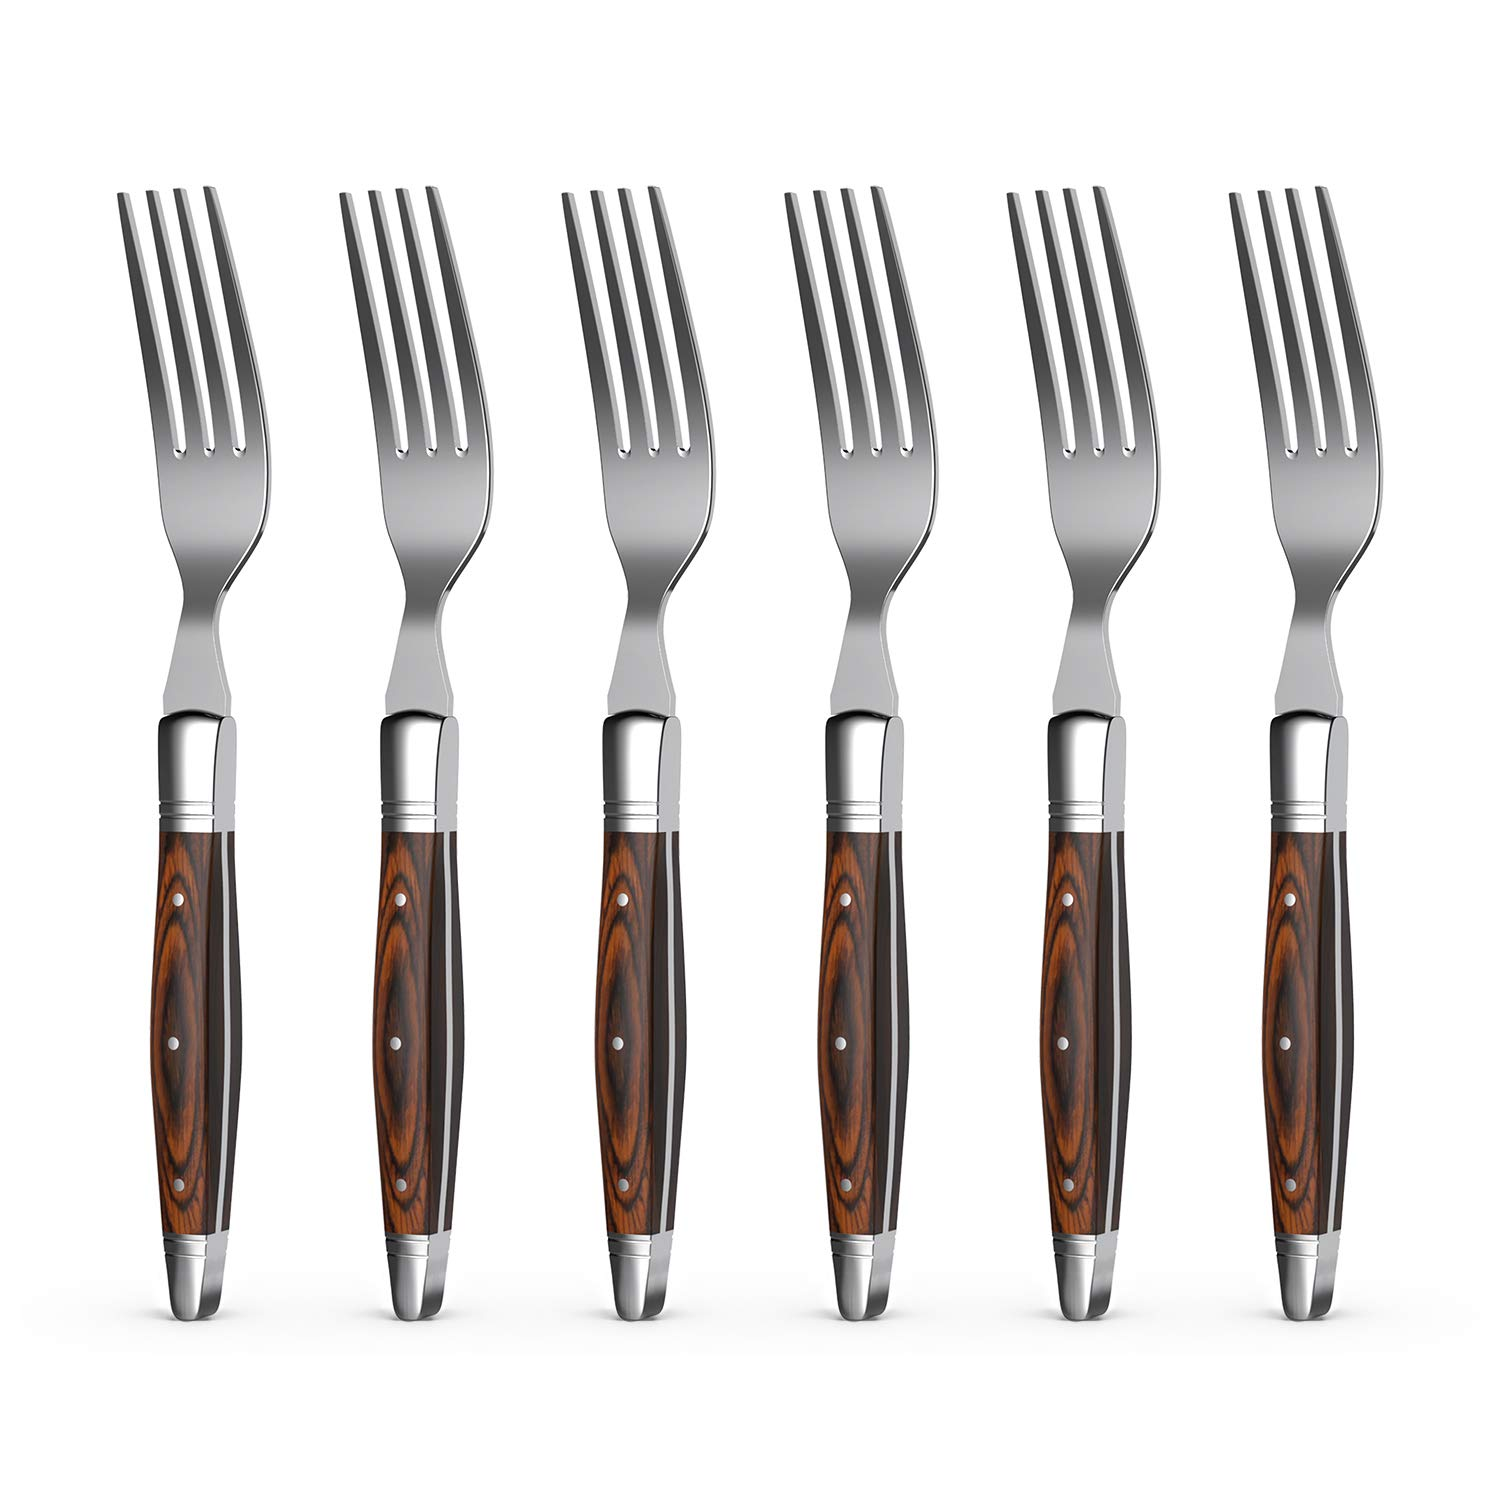 Uniharpa Laguiole Dinner Forks Flatware Steak Sets Stainless Steel Service for 6 With Pakkawood Handle and Gift Box